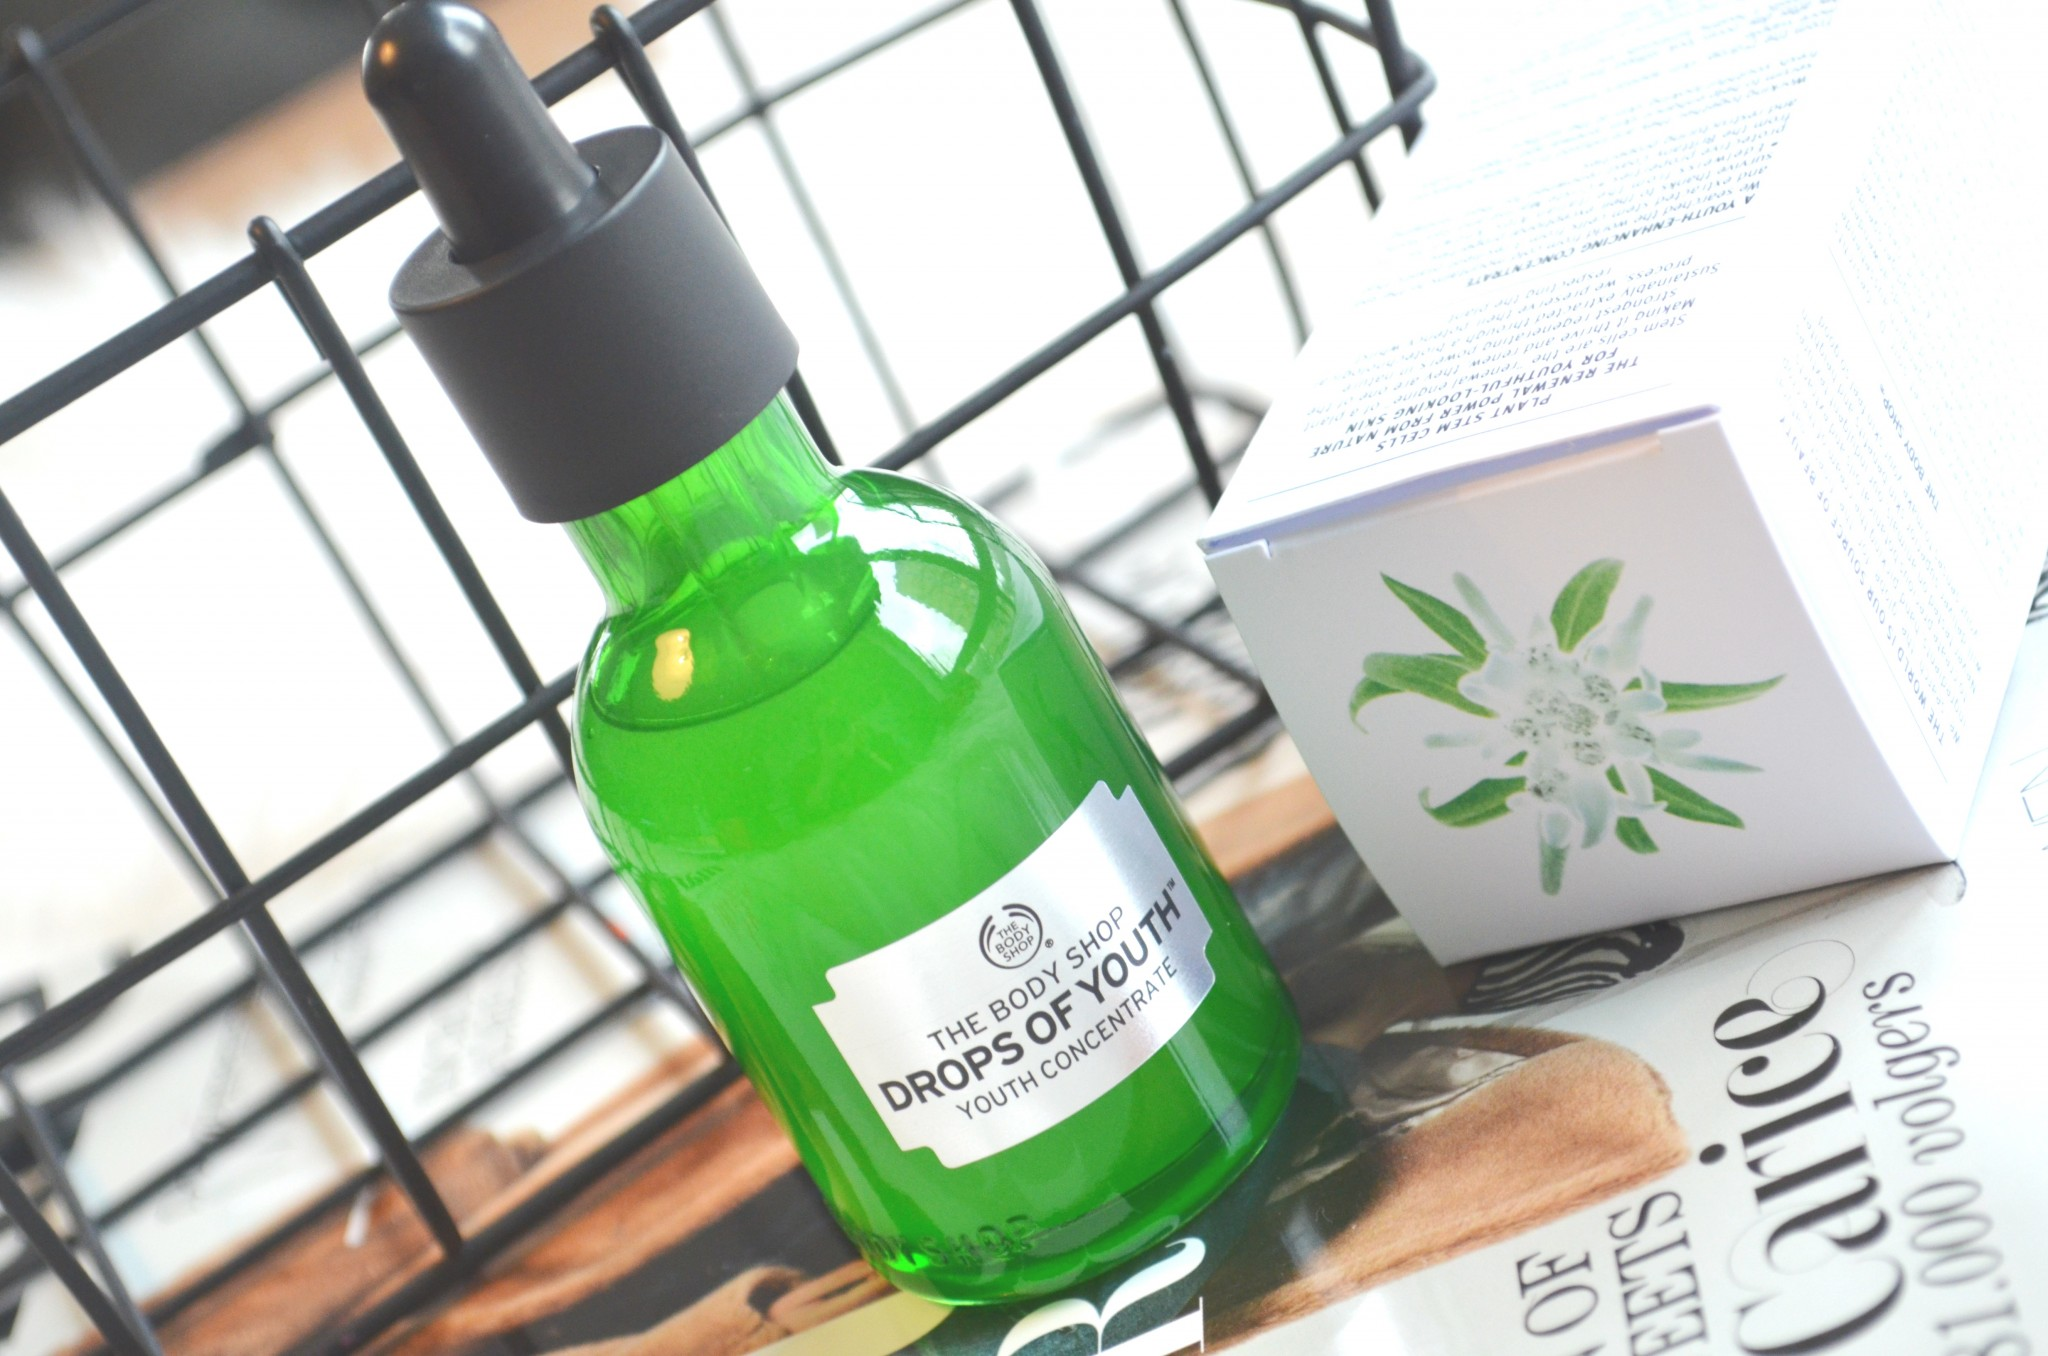 DSC 7431 - The Body Shop Drops of Youth Review